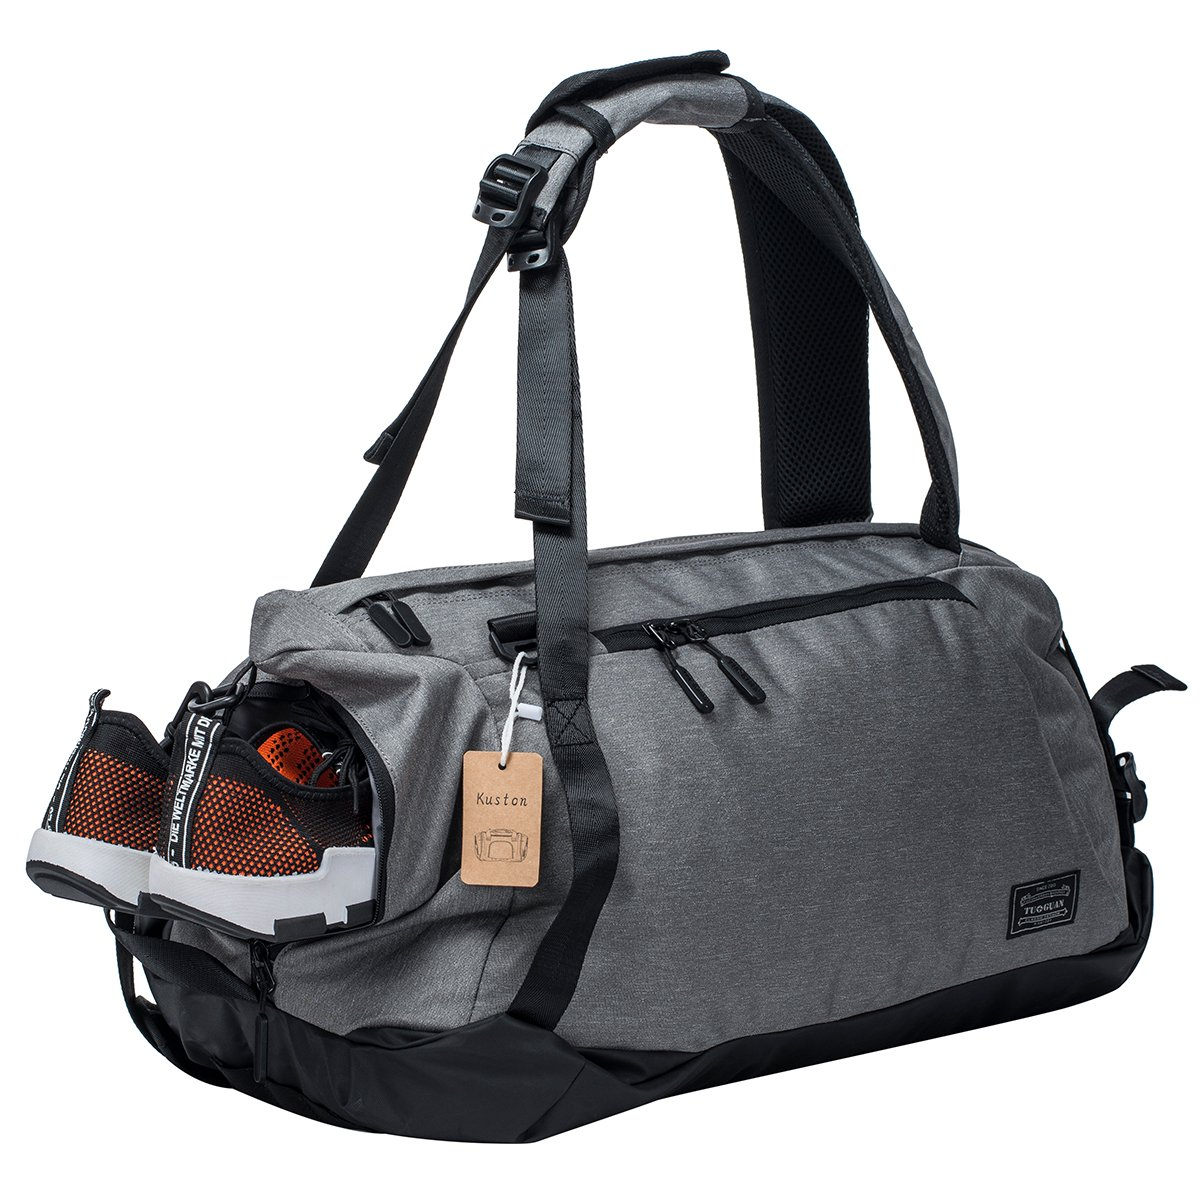 Sports Gym Bag with Shoes Compartment Travel Duffel Bag for Men and Women by Kuston